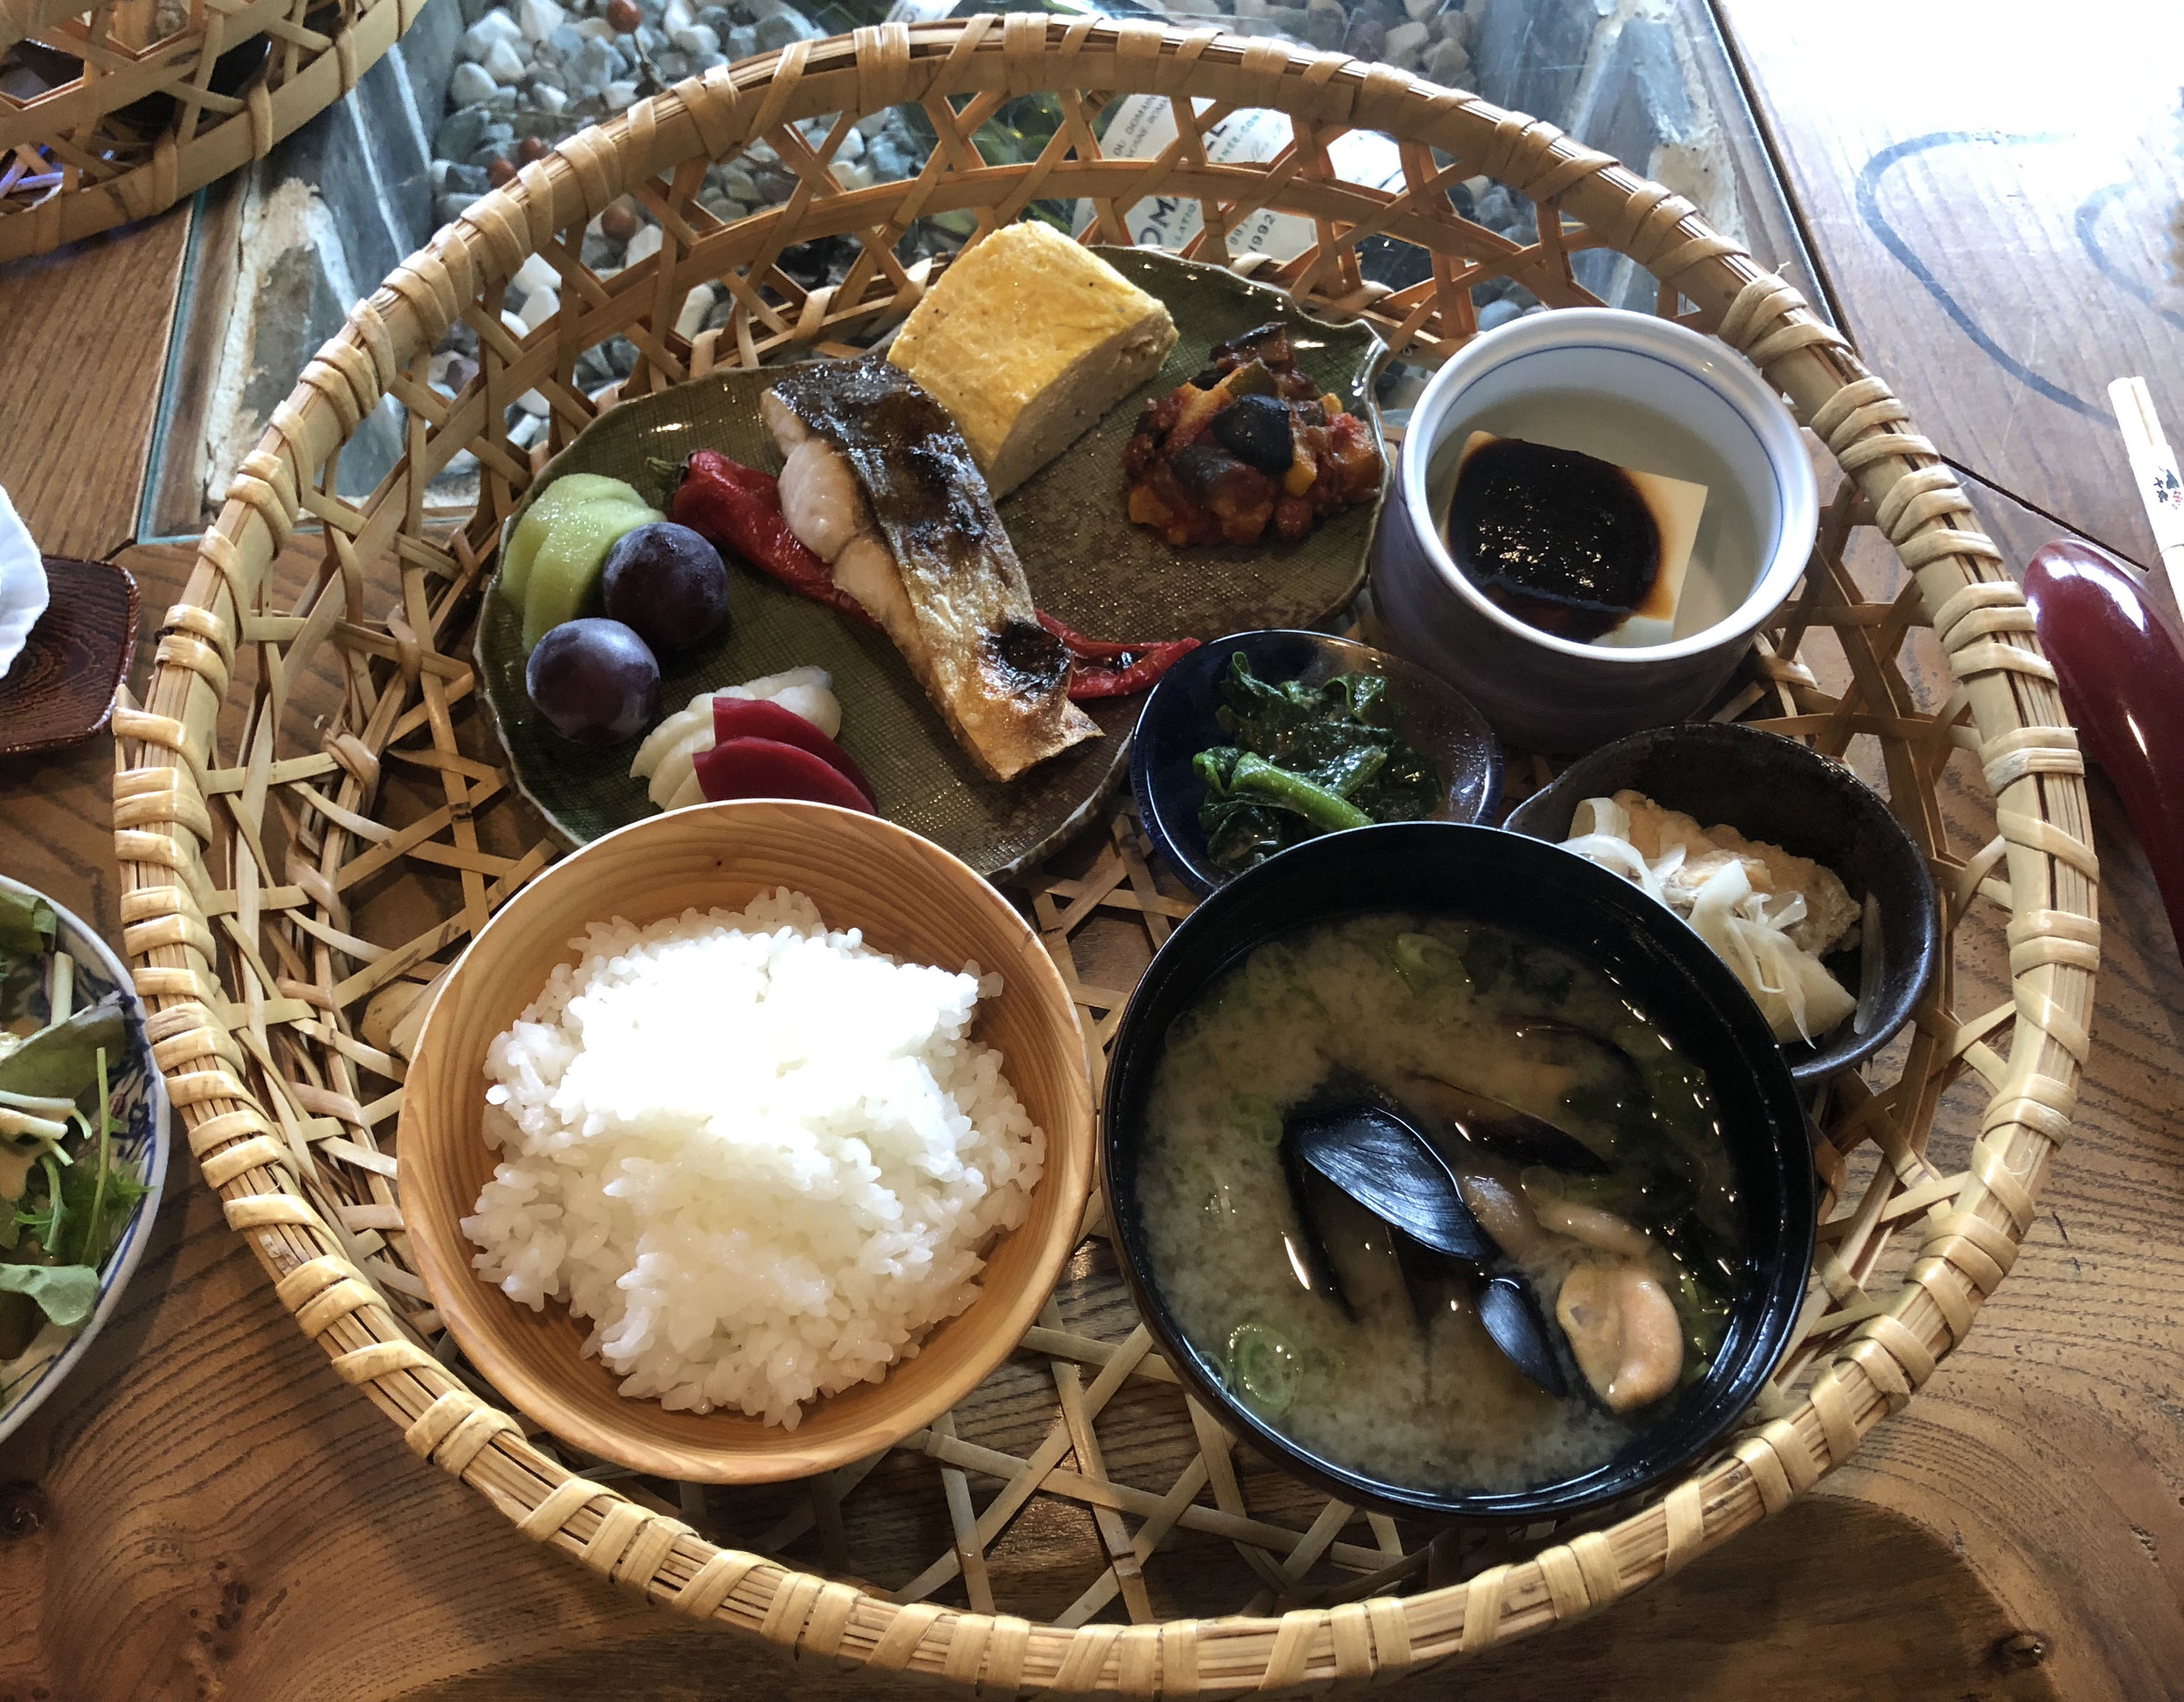 Breakfast another morning was served in a  makunouchi  bento box and included white rice and red miso soup with mussels.